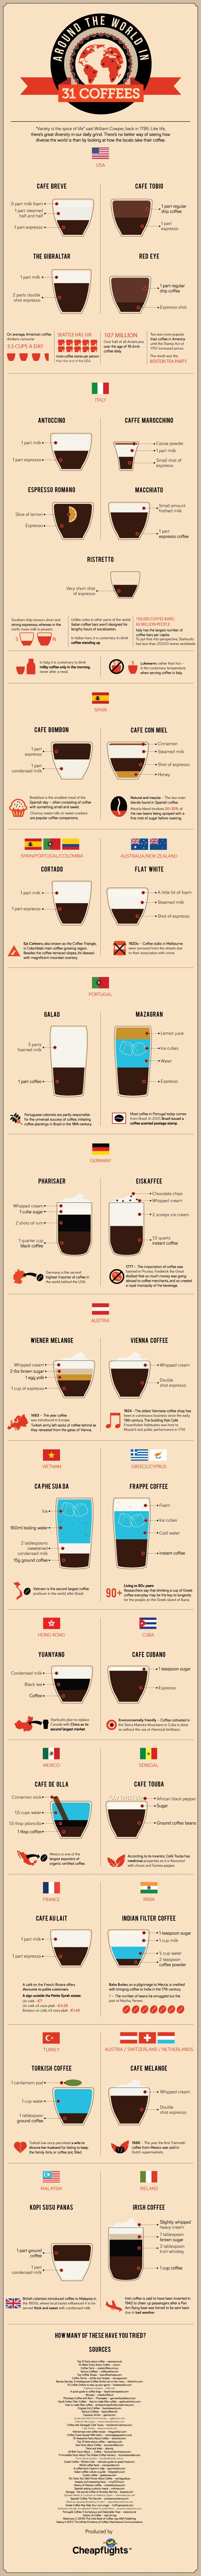 Coffee round the world, a new travel challenge is to try each coffee on this list in the country stated